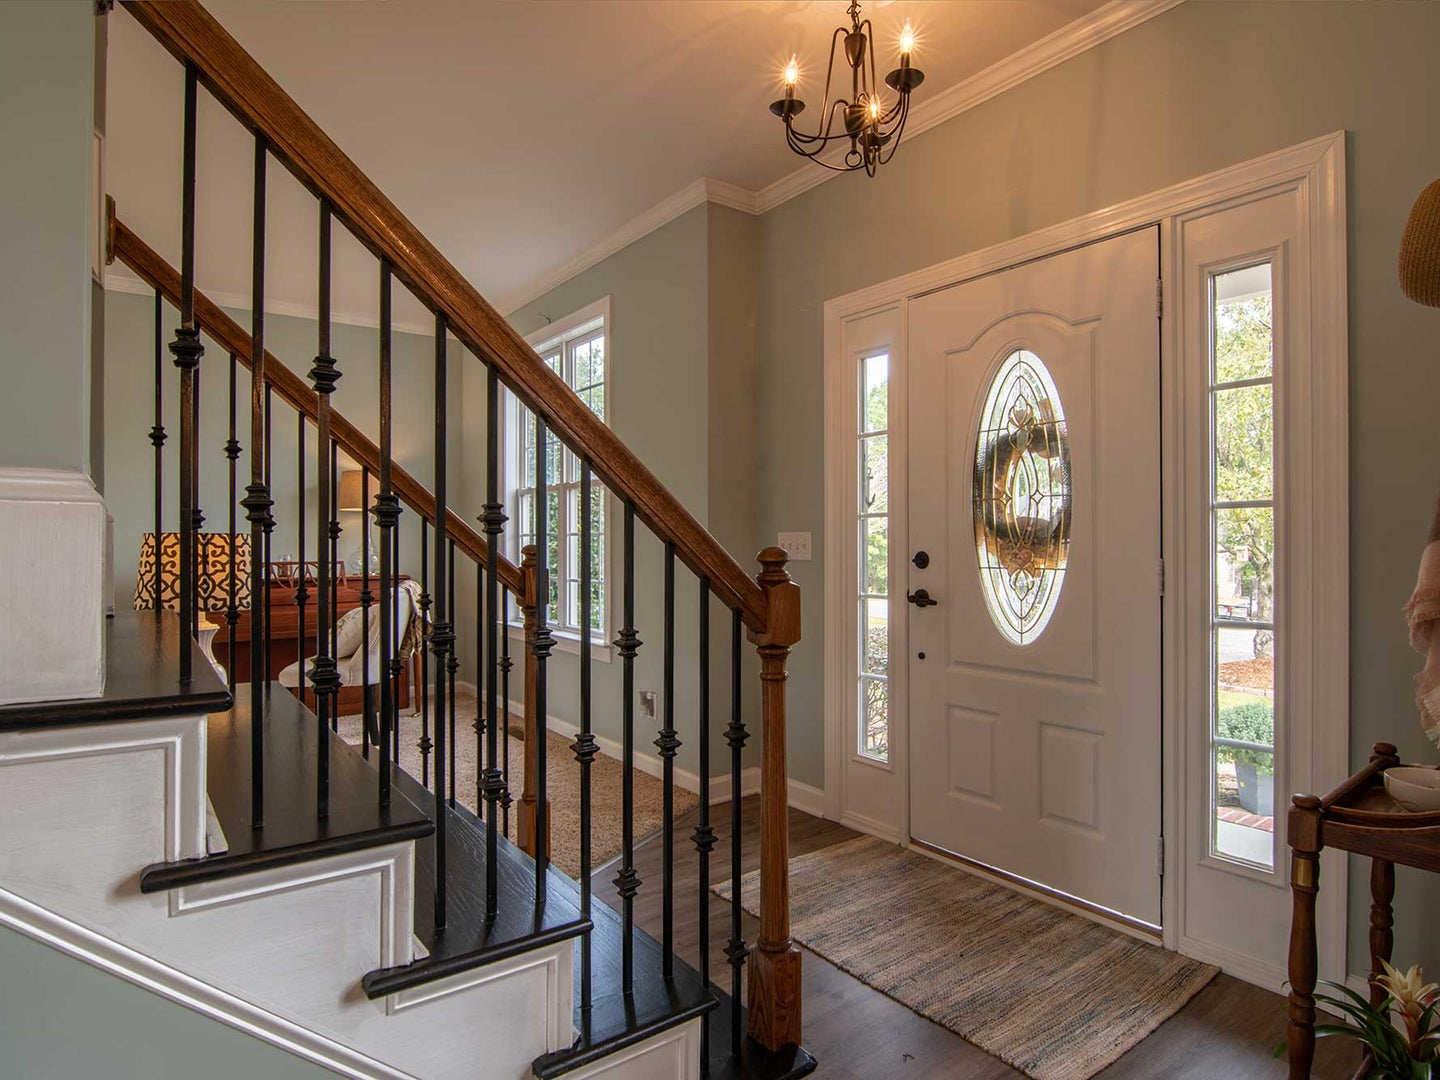 Entry way of a house